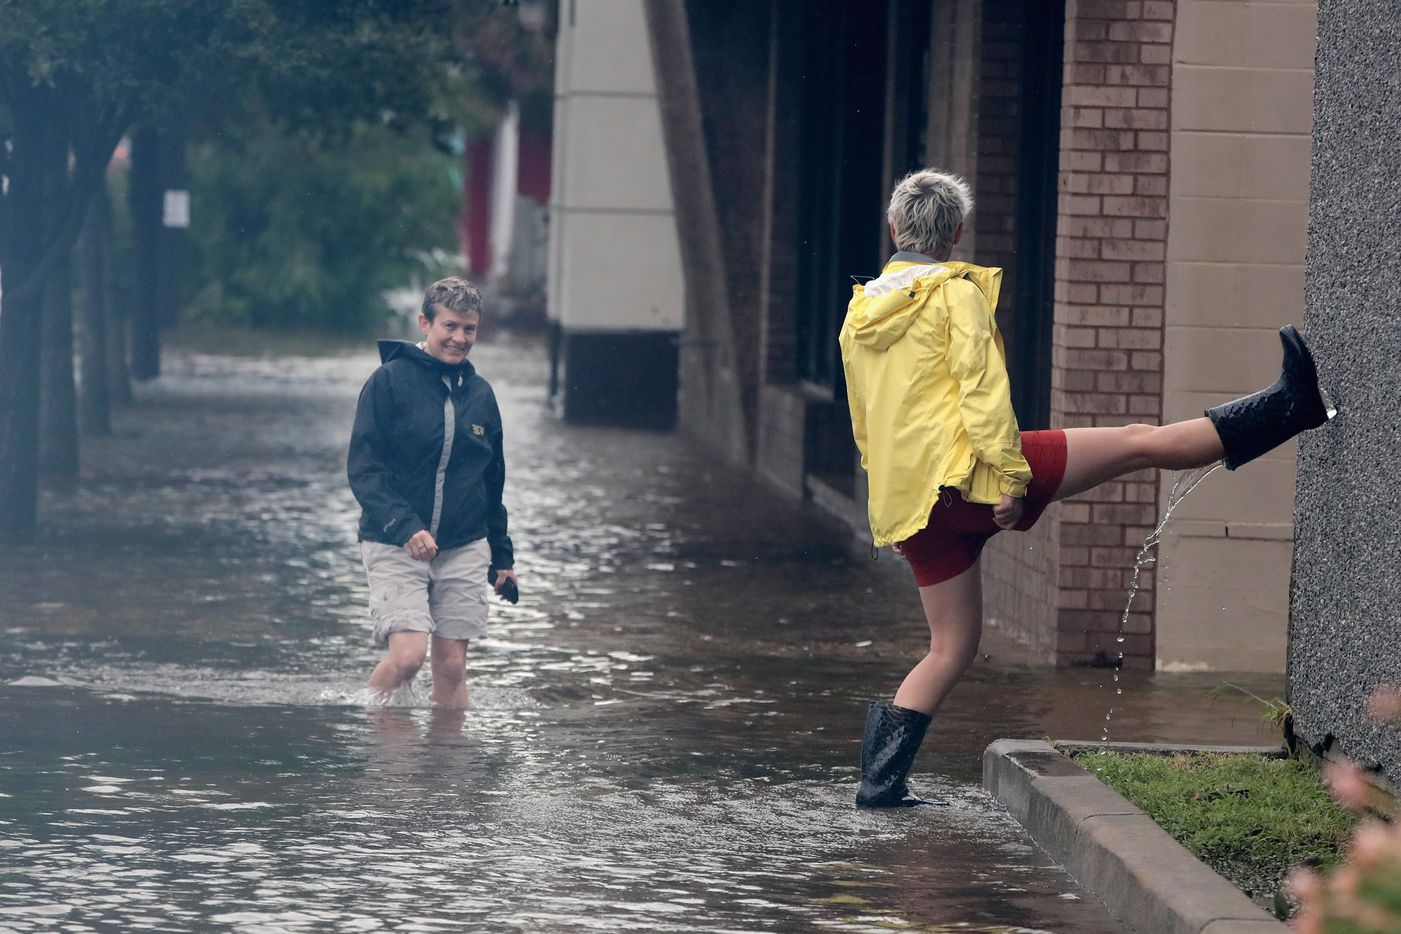 Residents walk along a street flooded by rain from Hurricane Harvey on August 26, 2017 in Galveston, Texas. Harvey, which made landfall north of Corpus Christi late last night, is expected to dump upwards to 40 inches of rain in Texas over the next couple of days.